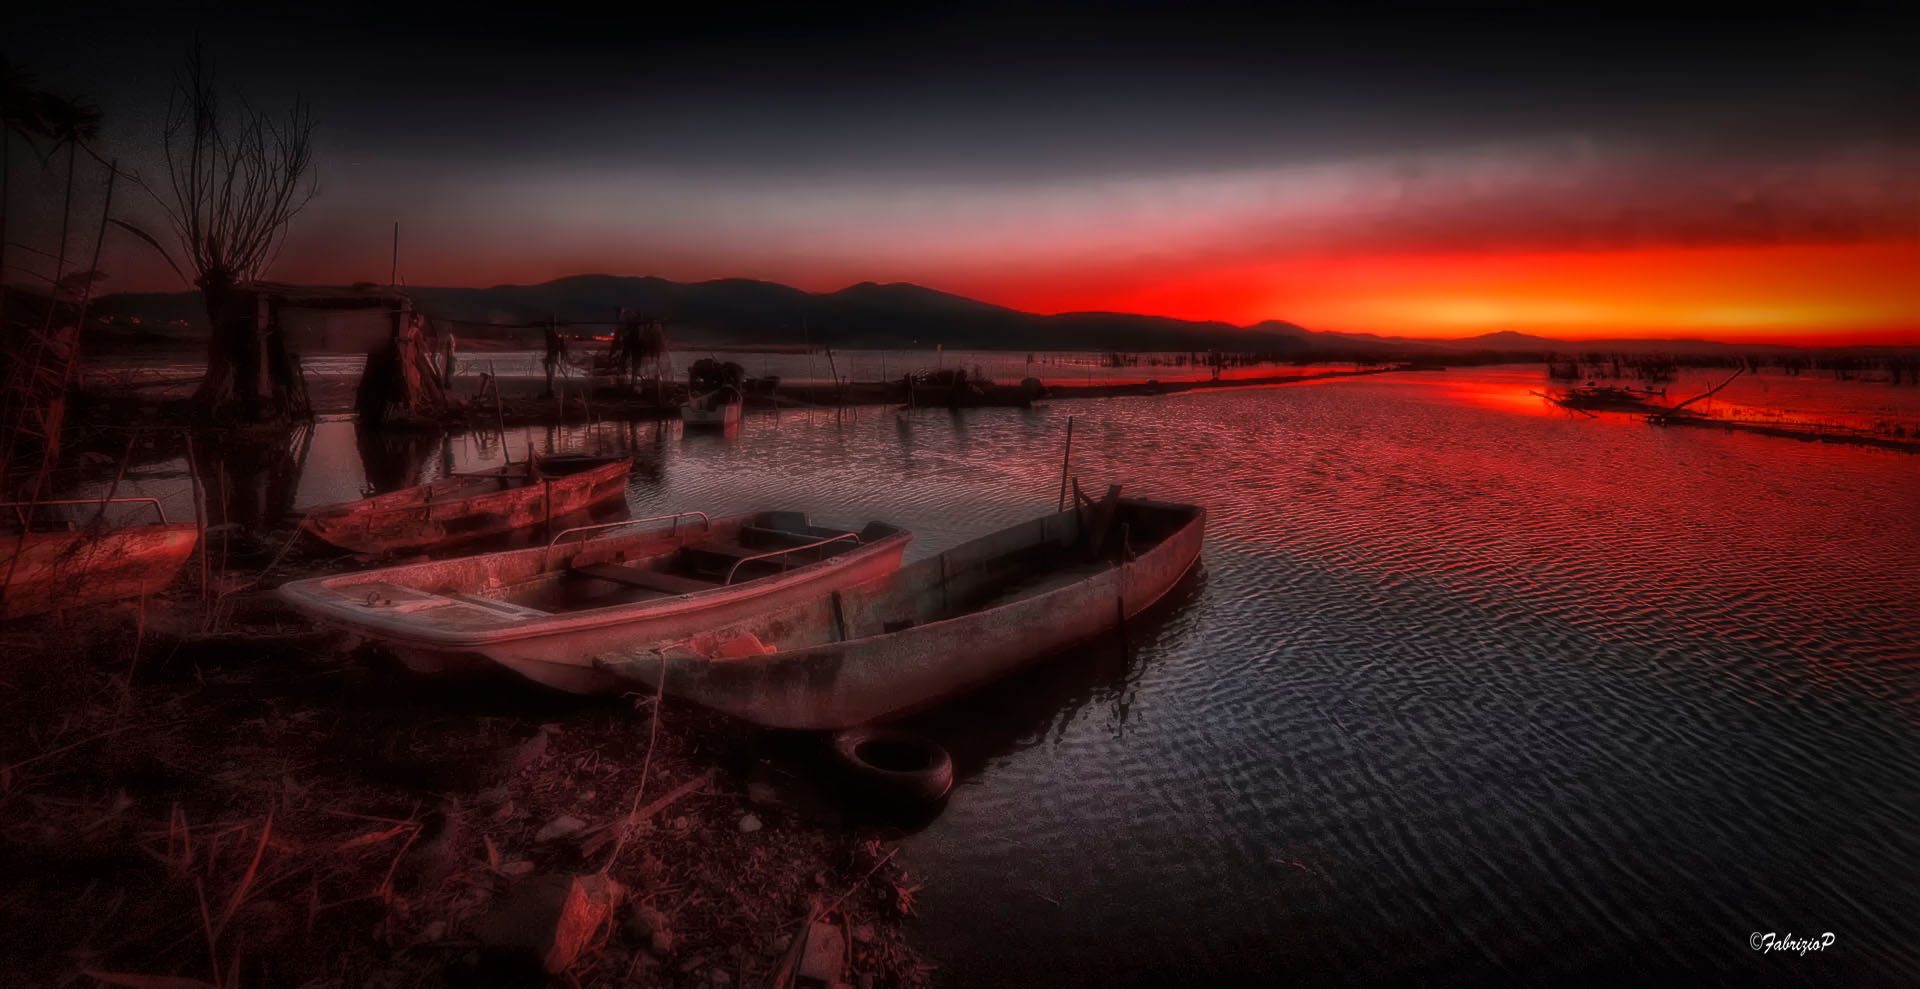 The redness of a sunset ...